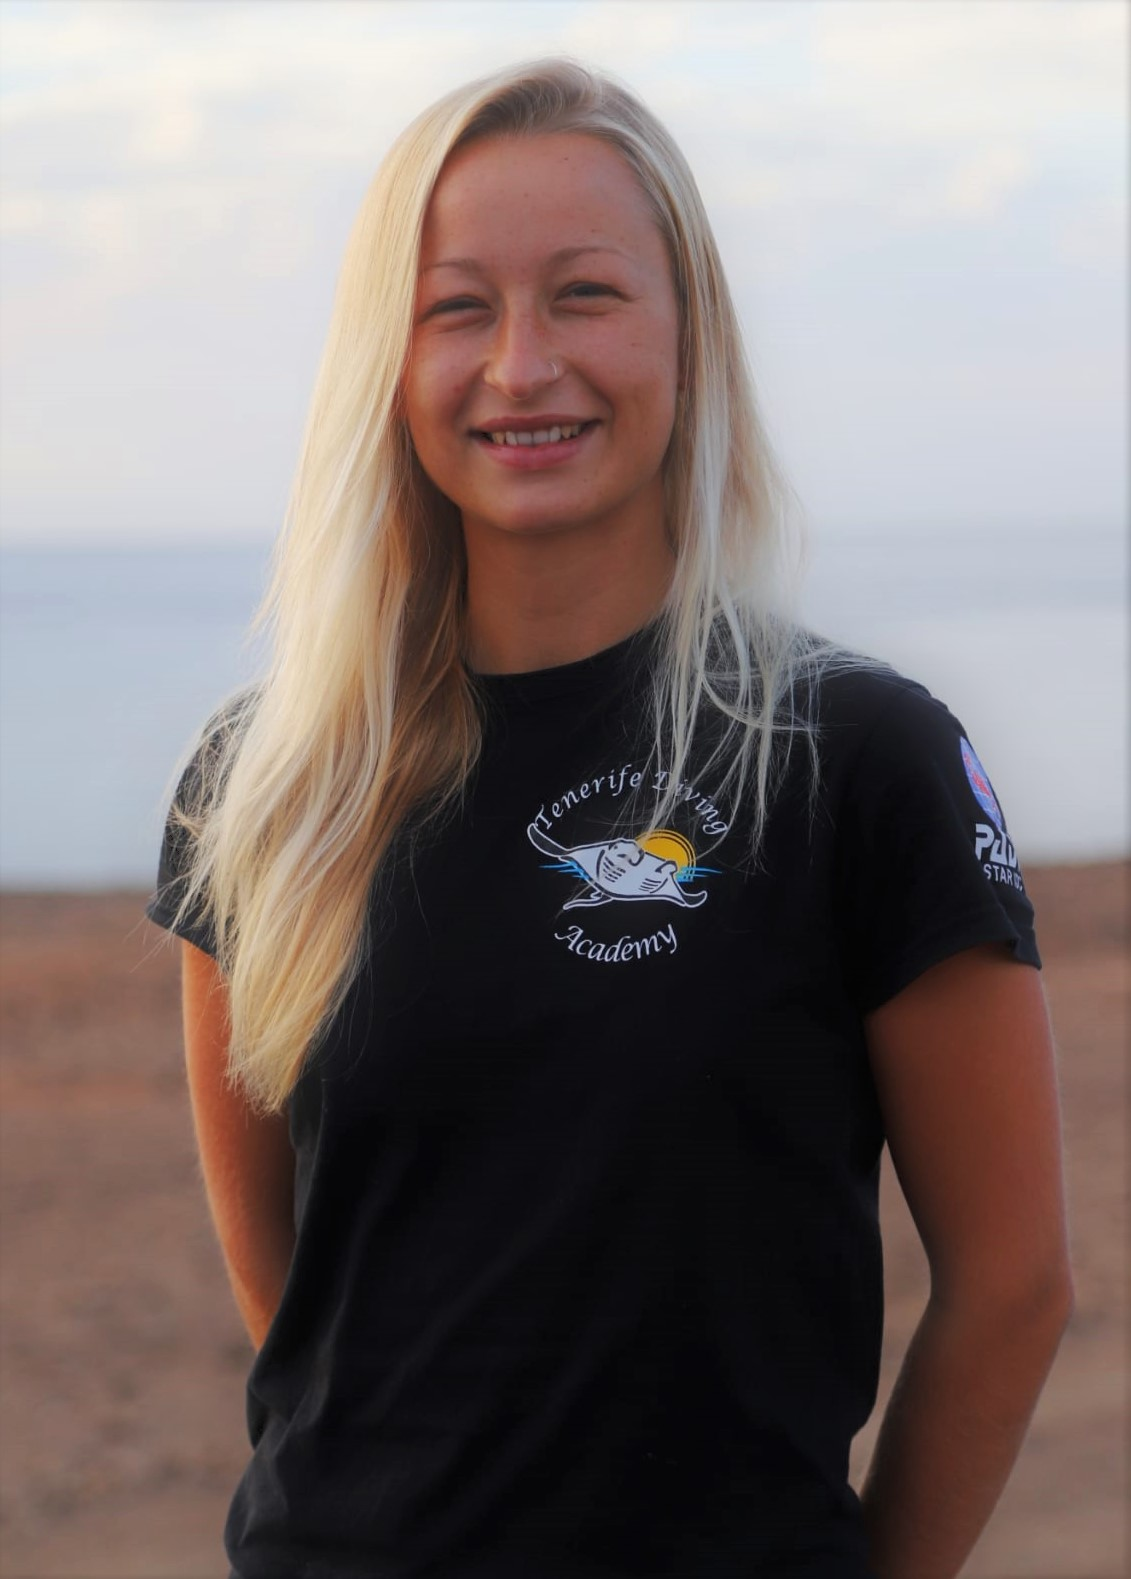 PADI Instructor Tenerife female